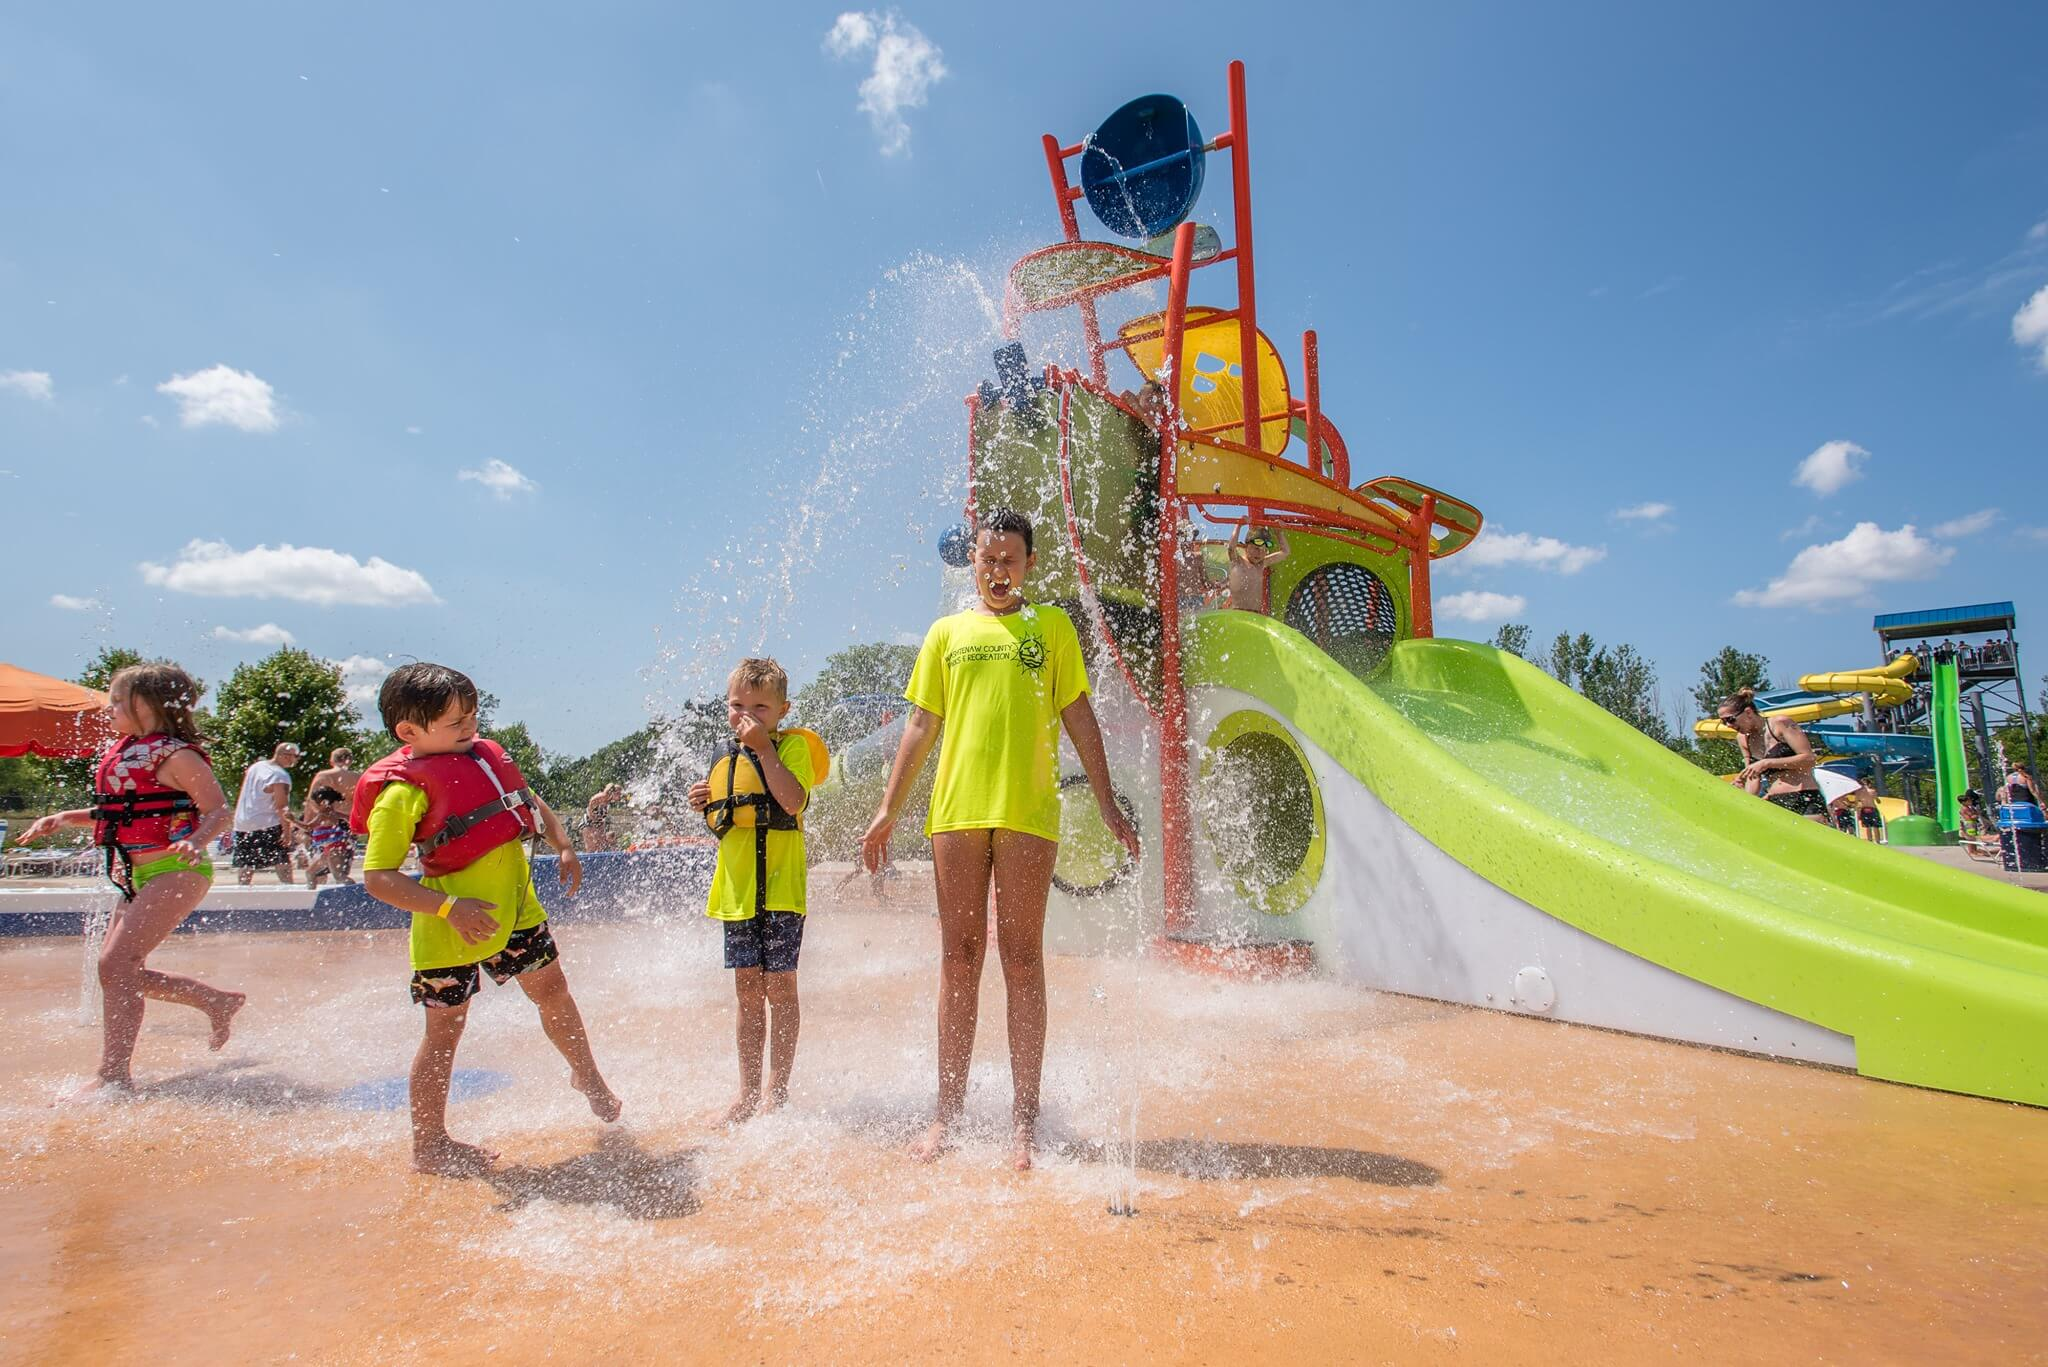 Plan Your Visit To Rolling Hills Water Park In Washtenaw County This Summer